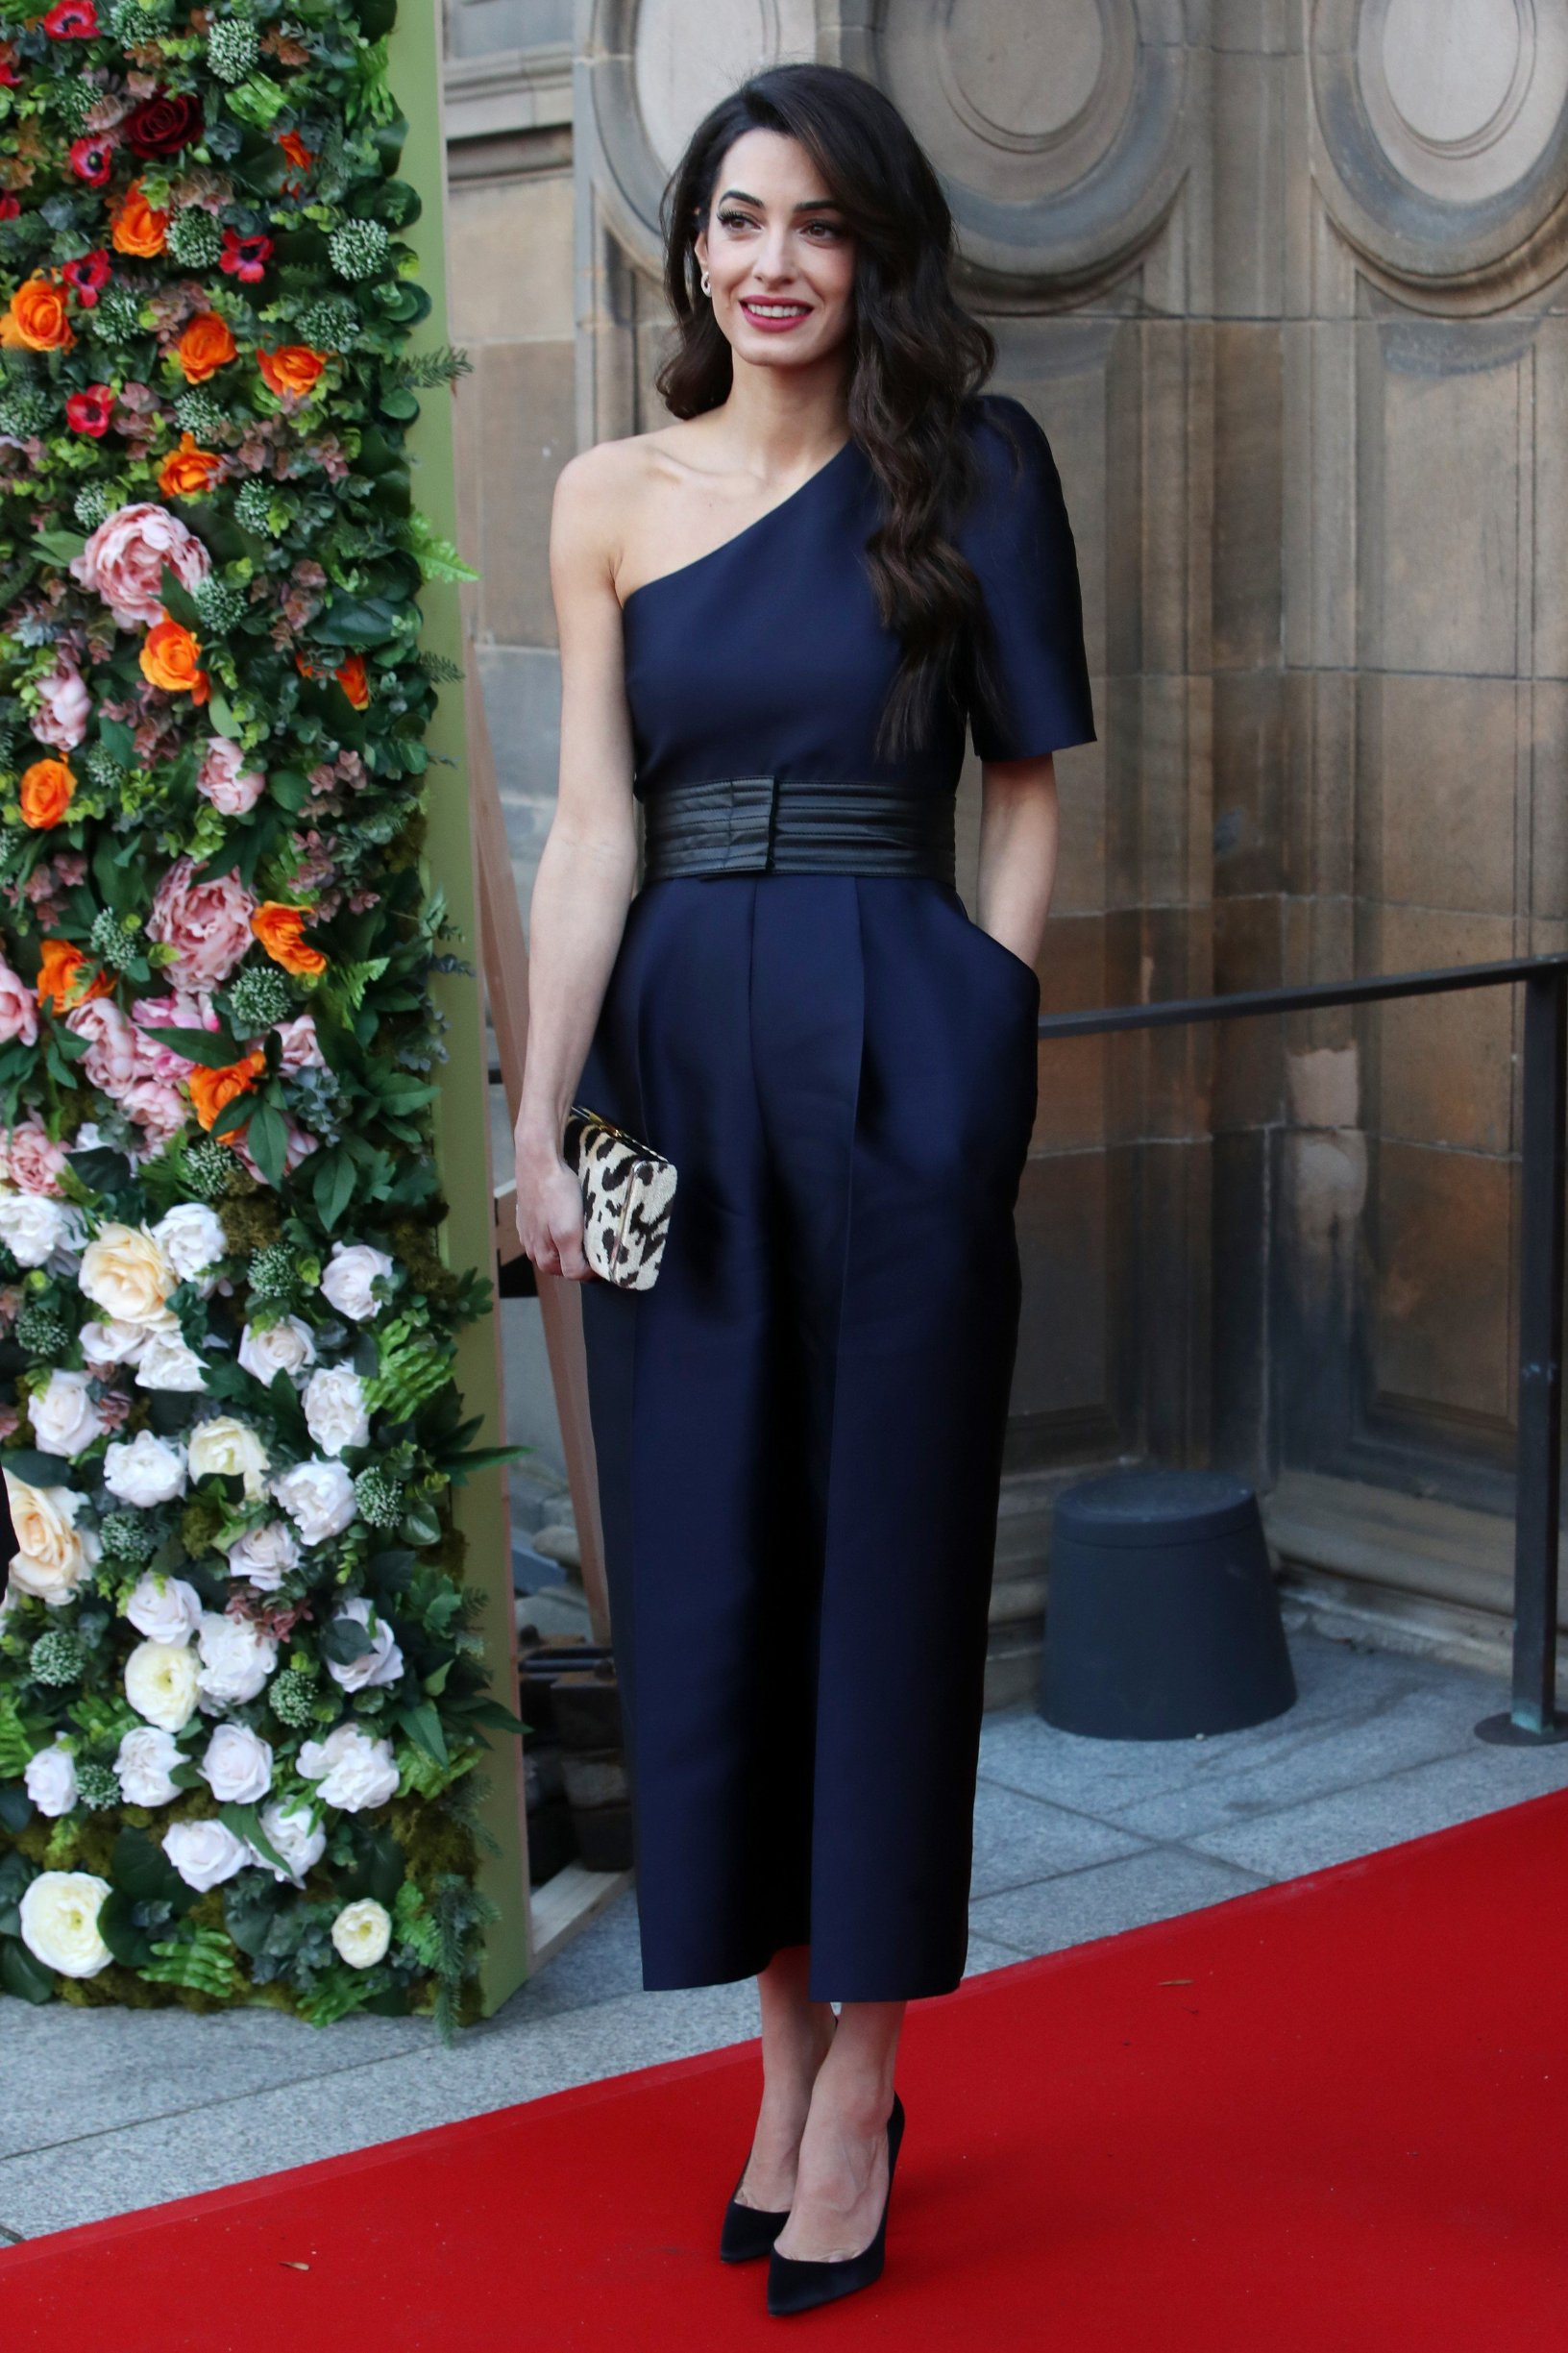 Amal Clooney People's Postcode Lottery photocall, Edinburgh, Scotland, UK - 14 Mar 2019, Image: 419456253, License: Rights-managed, Restrictions: , Model Release: no, Credit line: Profimedia, TEMP Rex Features